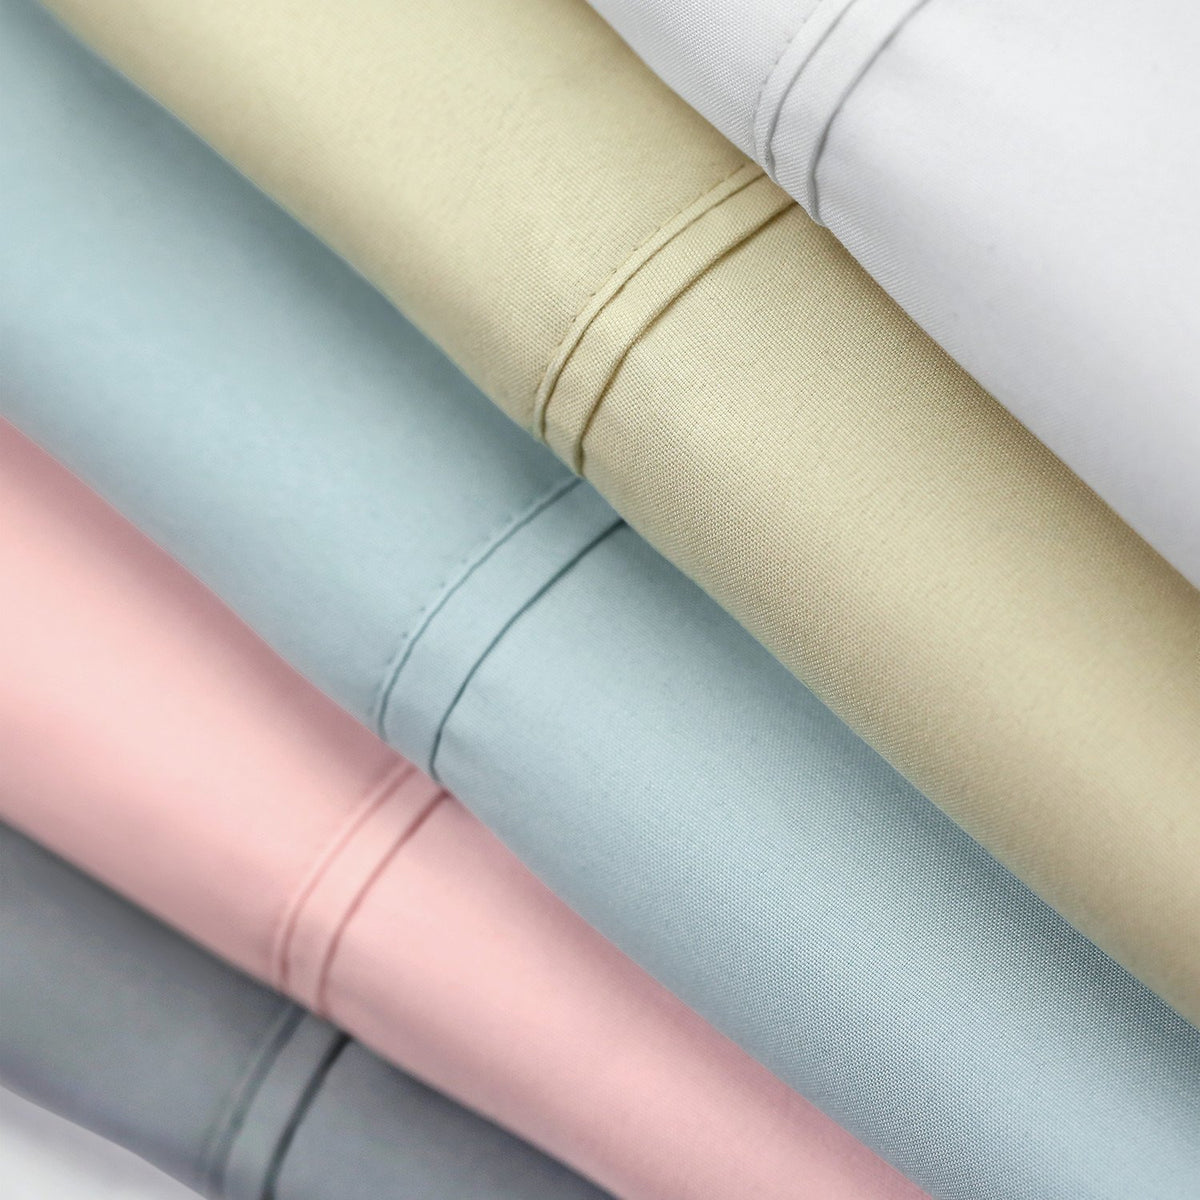 WOVEN Brushed Microfiber Sheet Set Sheet Set Malouf